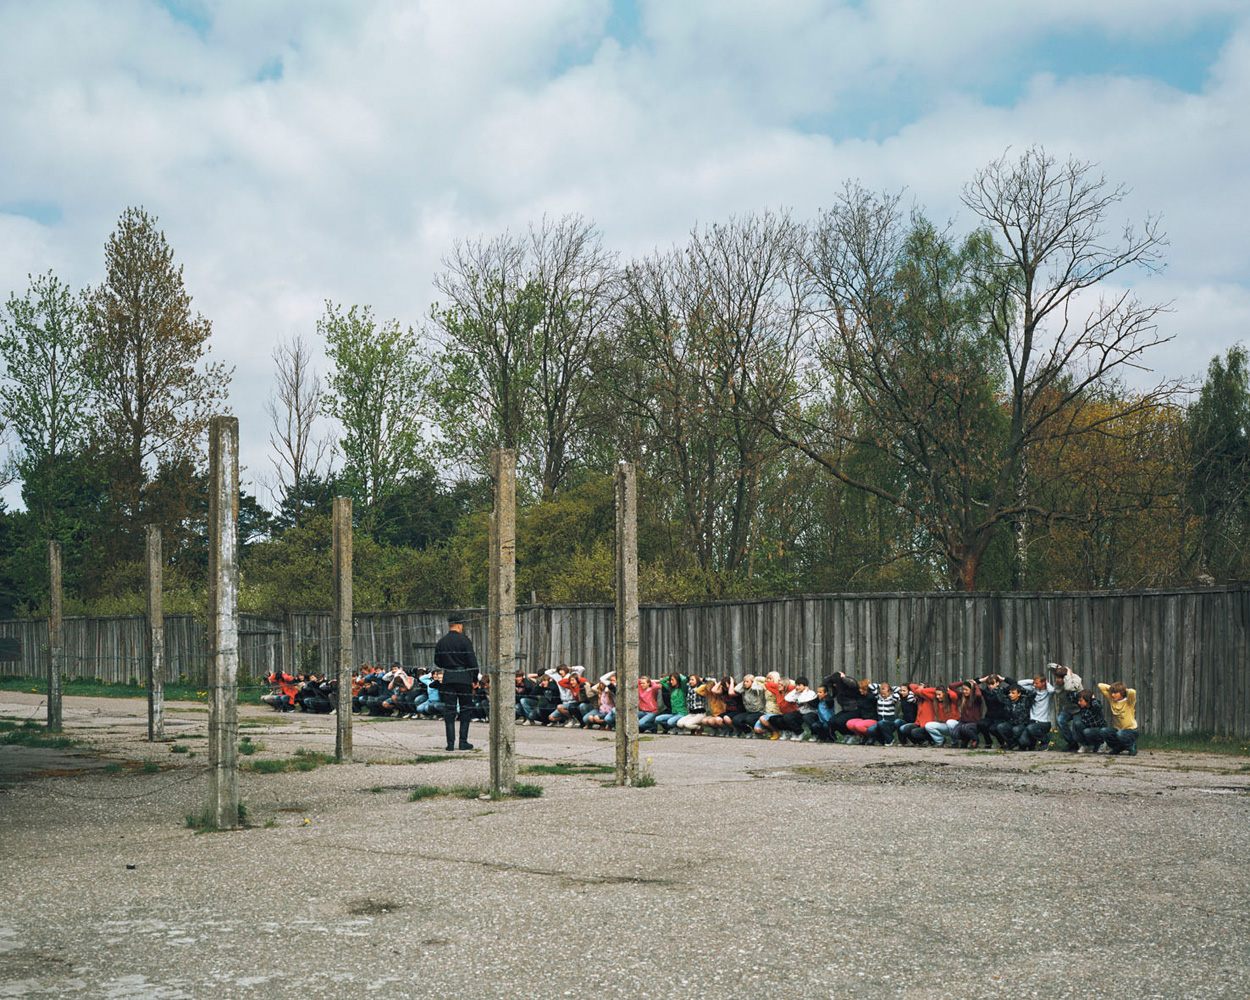 Karosta prison — Liepaja, Latvia. 2009.Visitors enter the only military prison in Europe open to tourists. The tour includes a  historical interactive reality show  in which participants can play the parts of the prisoners.